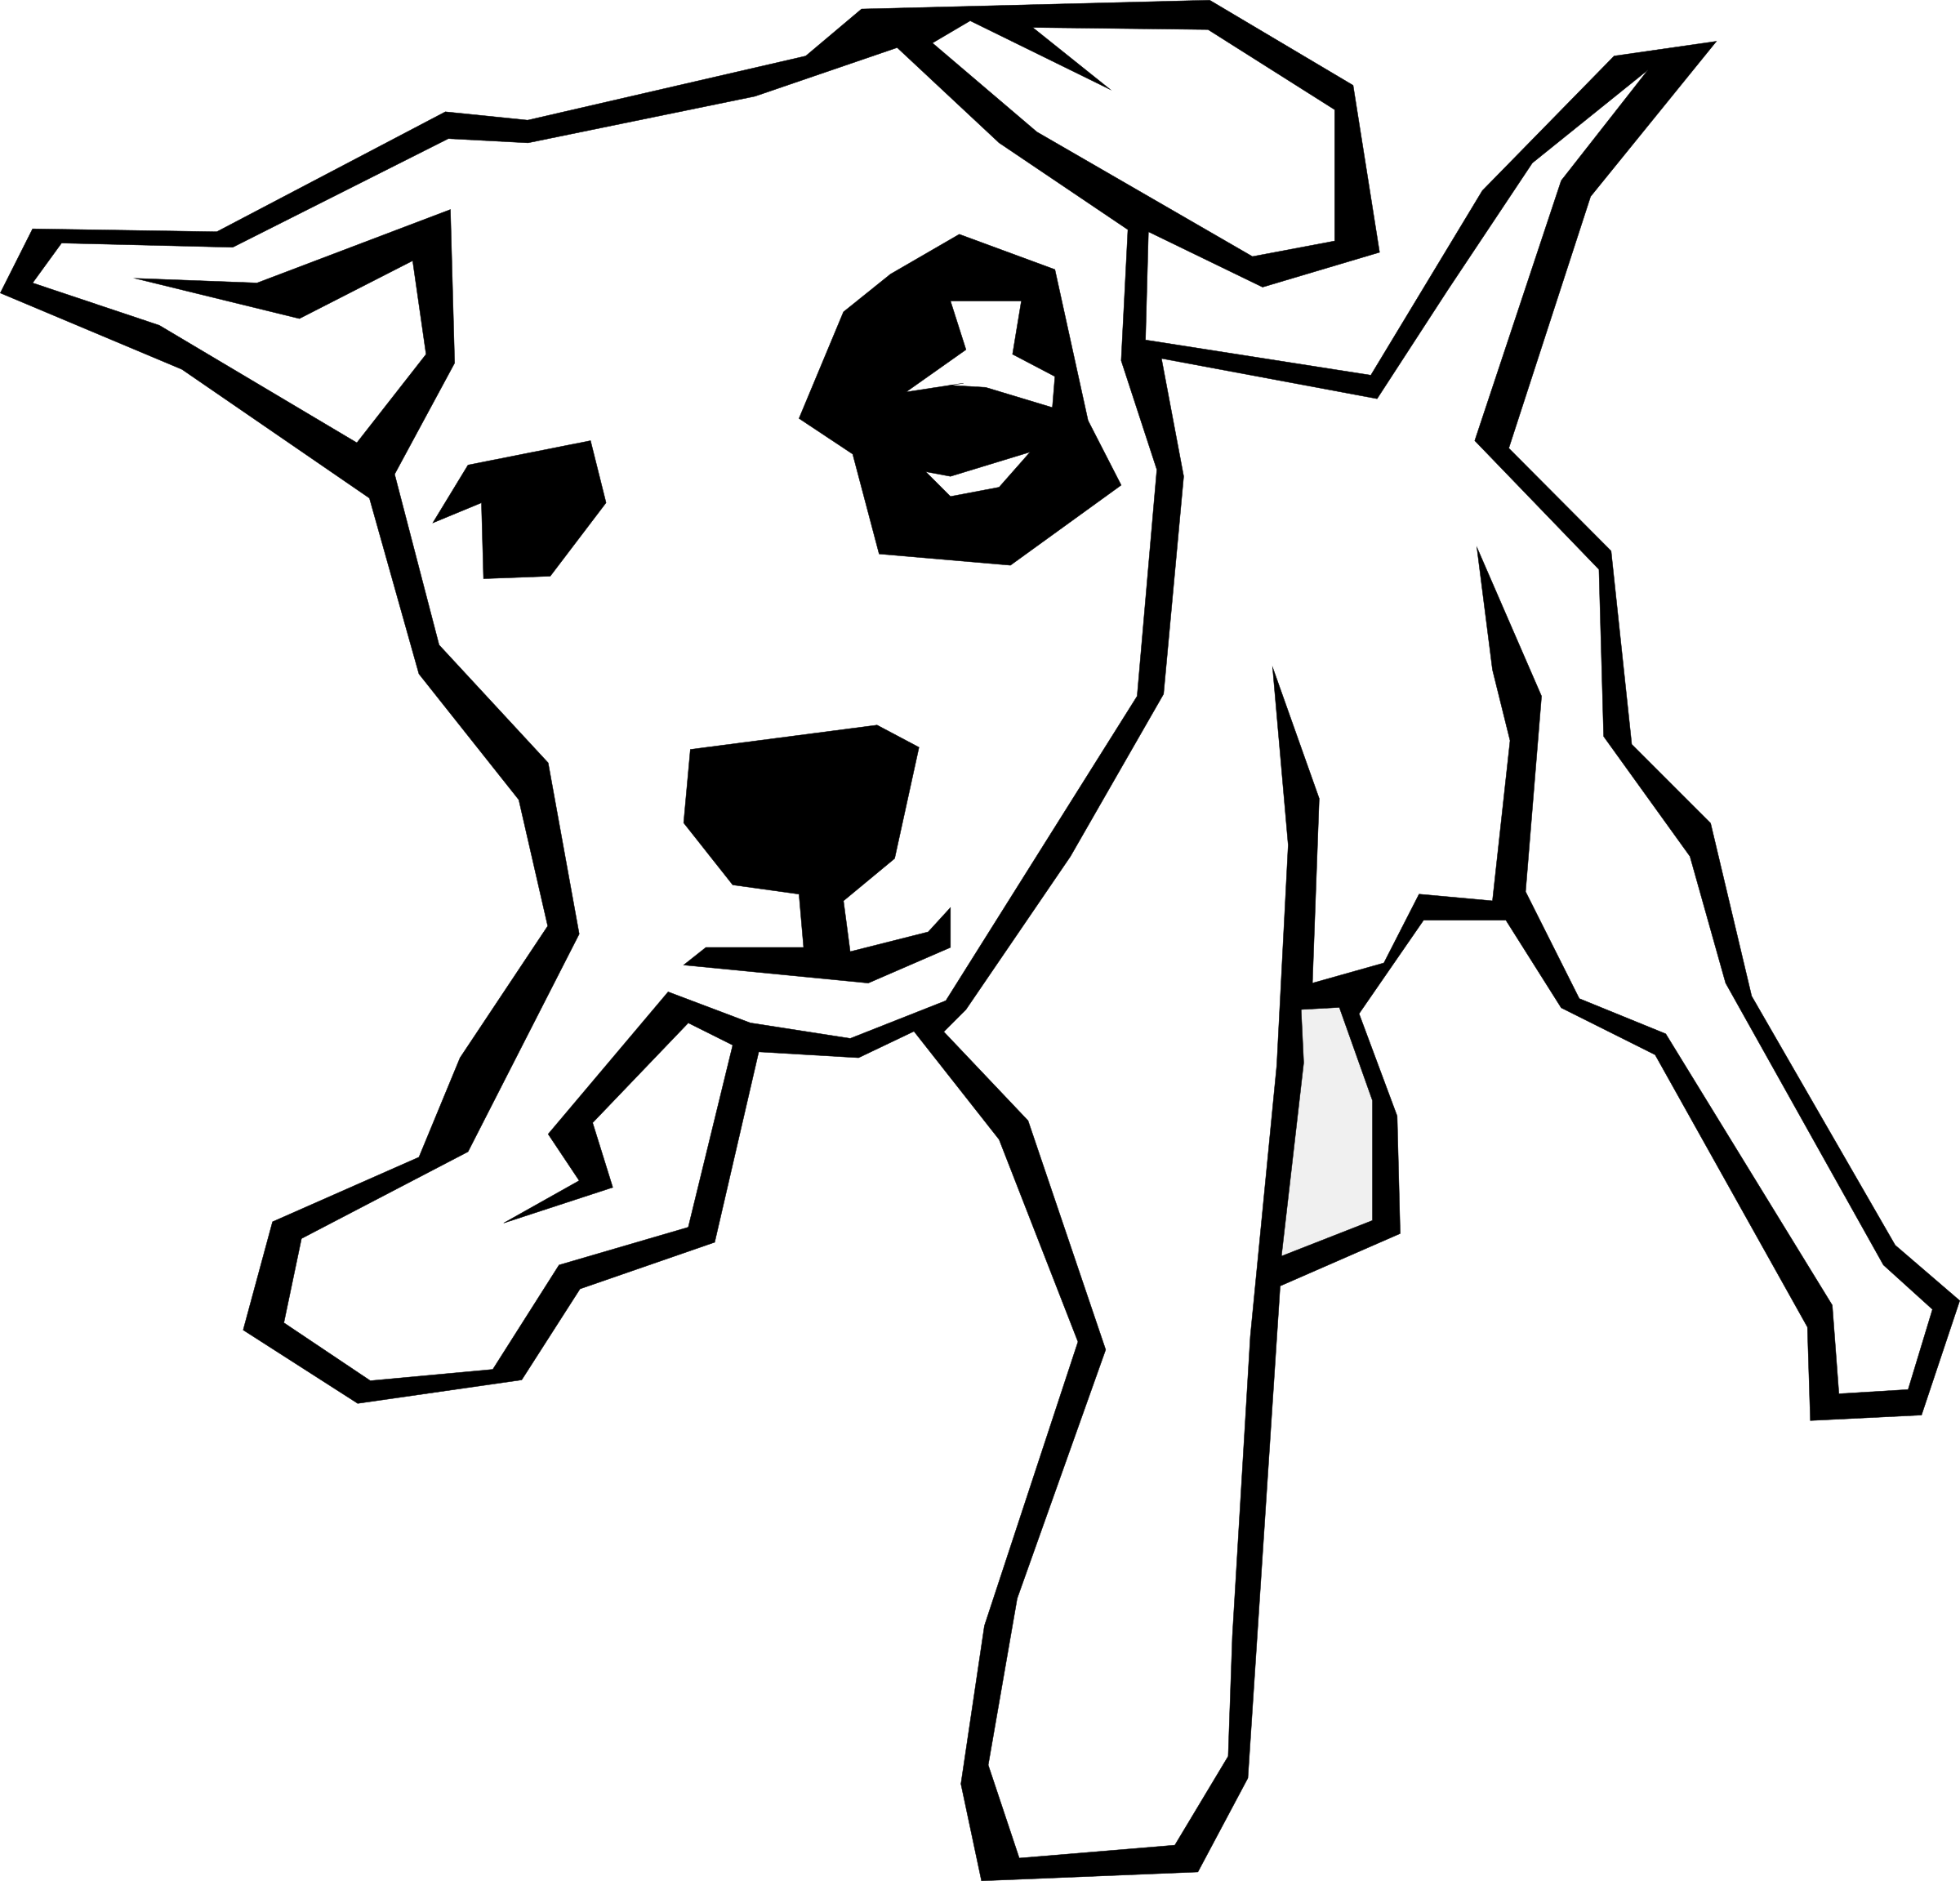 Pet clipart small pet. Dog simple drawing big